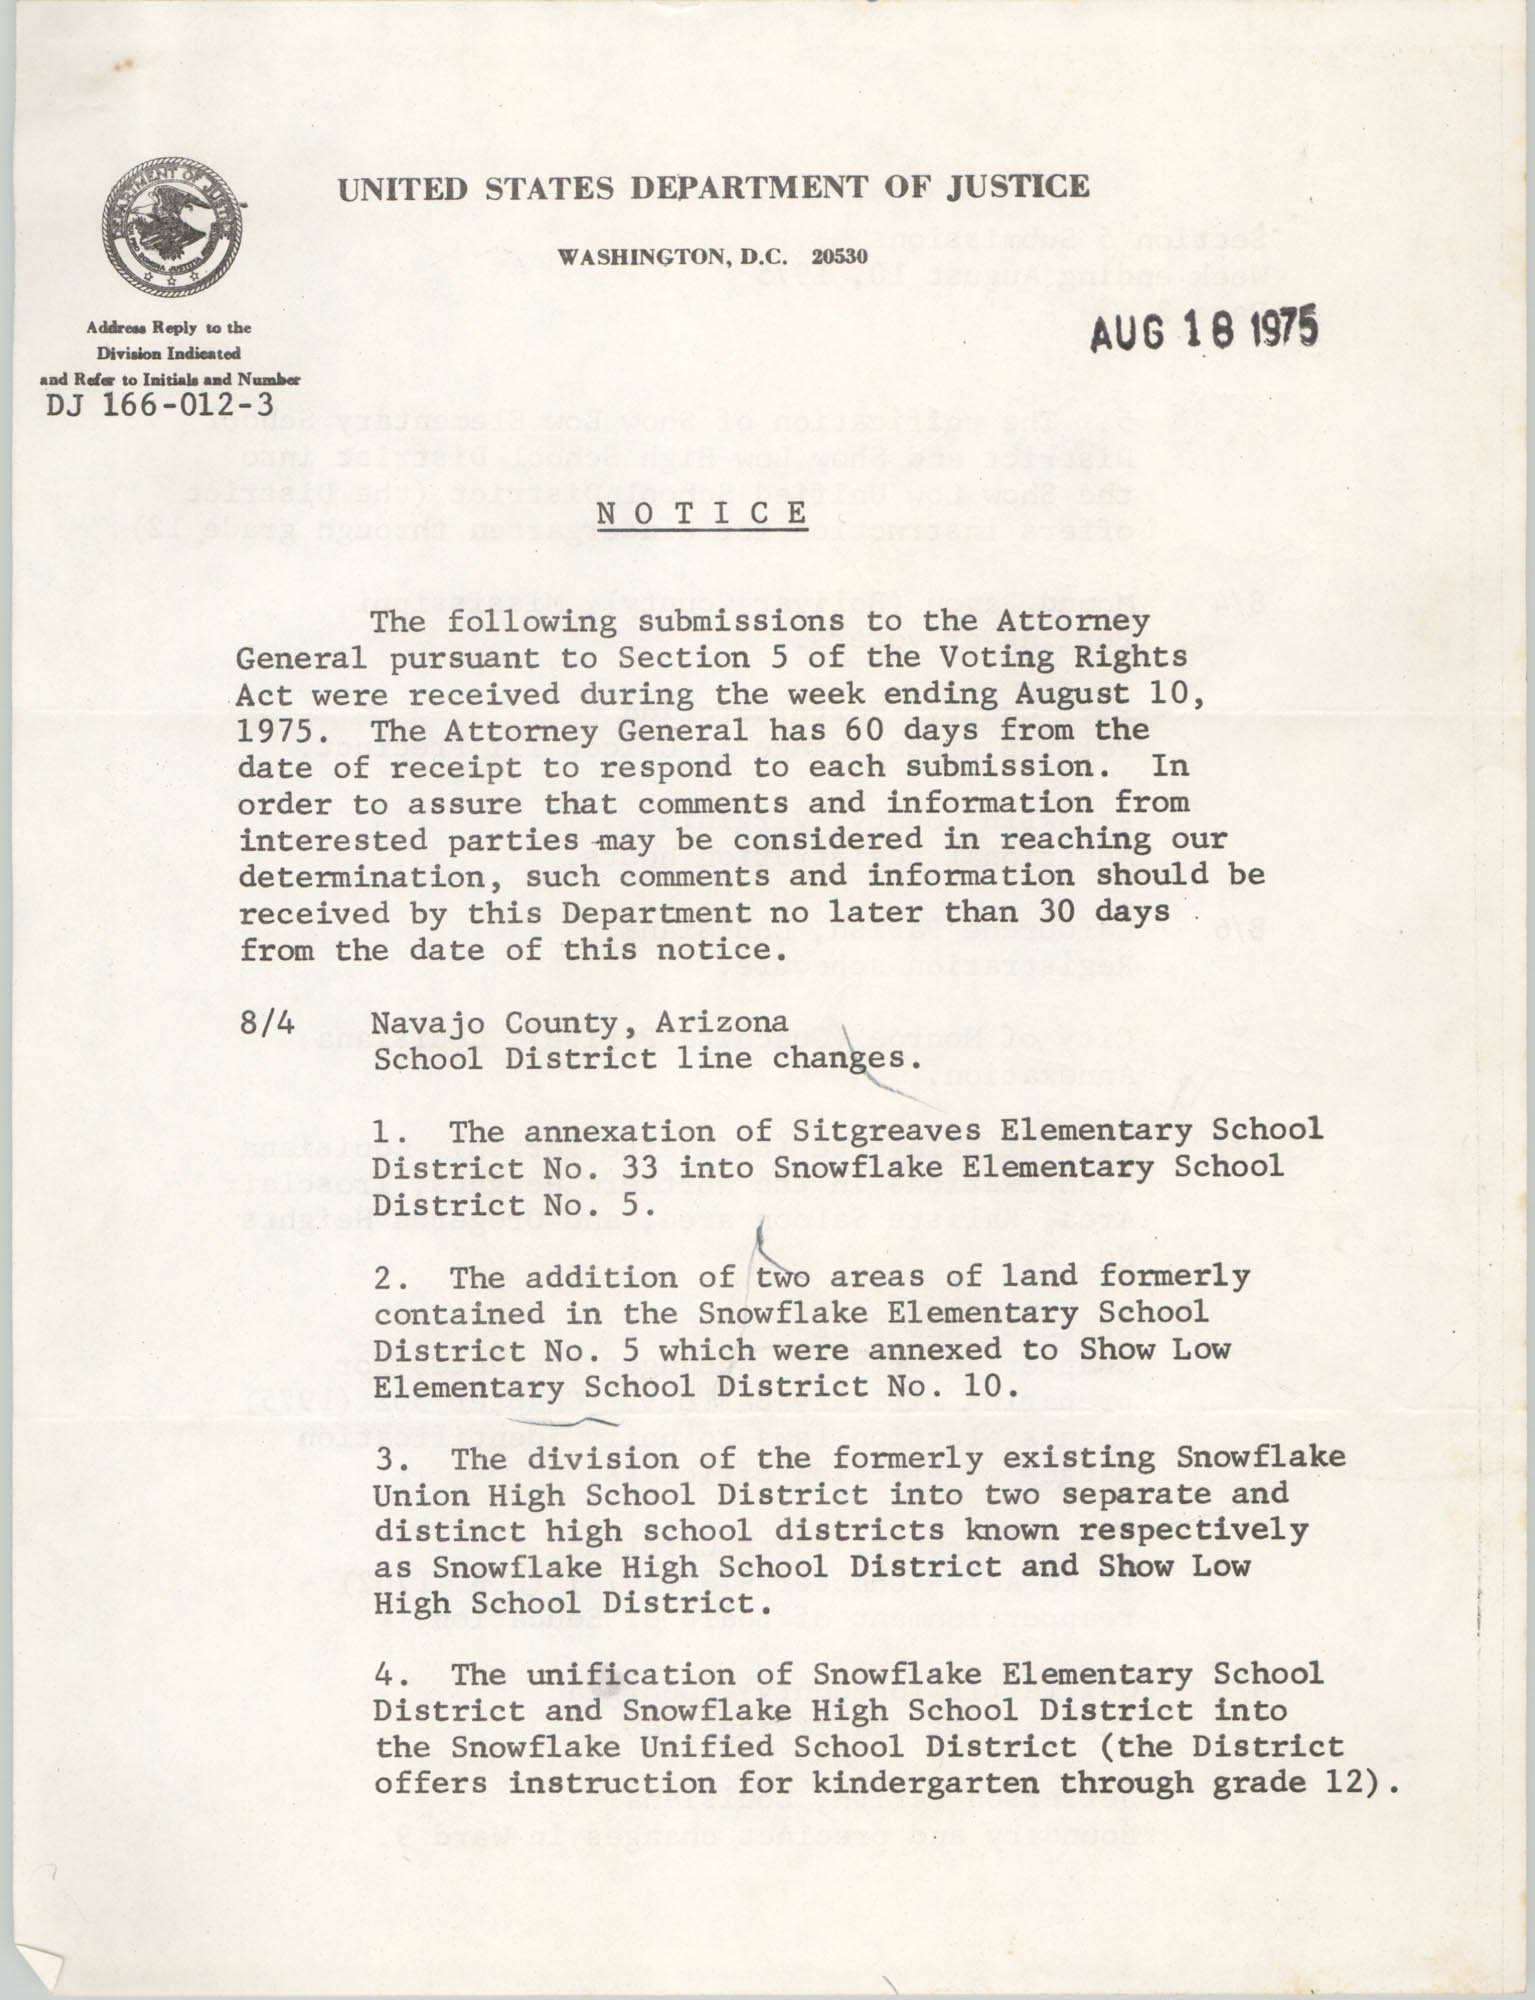 United States Department of Justice Notice, August 18, 1975